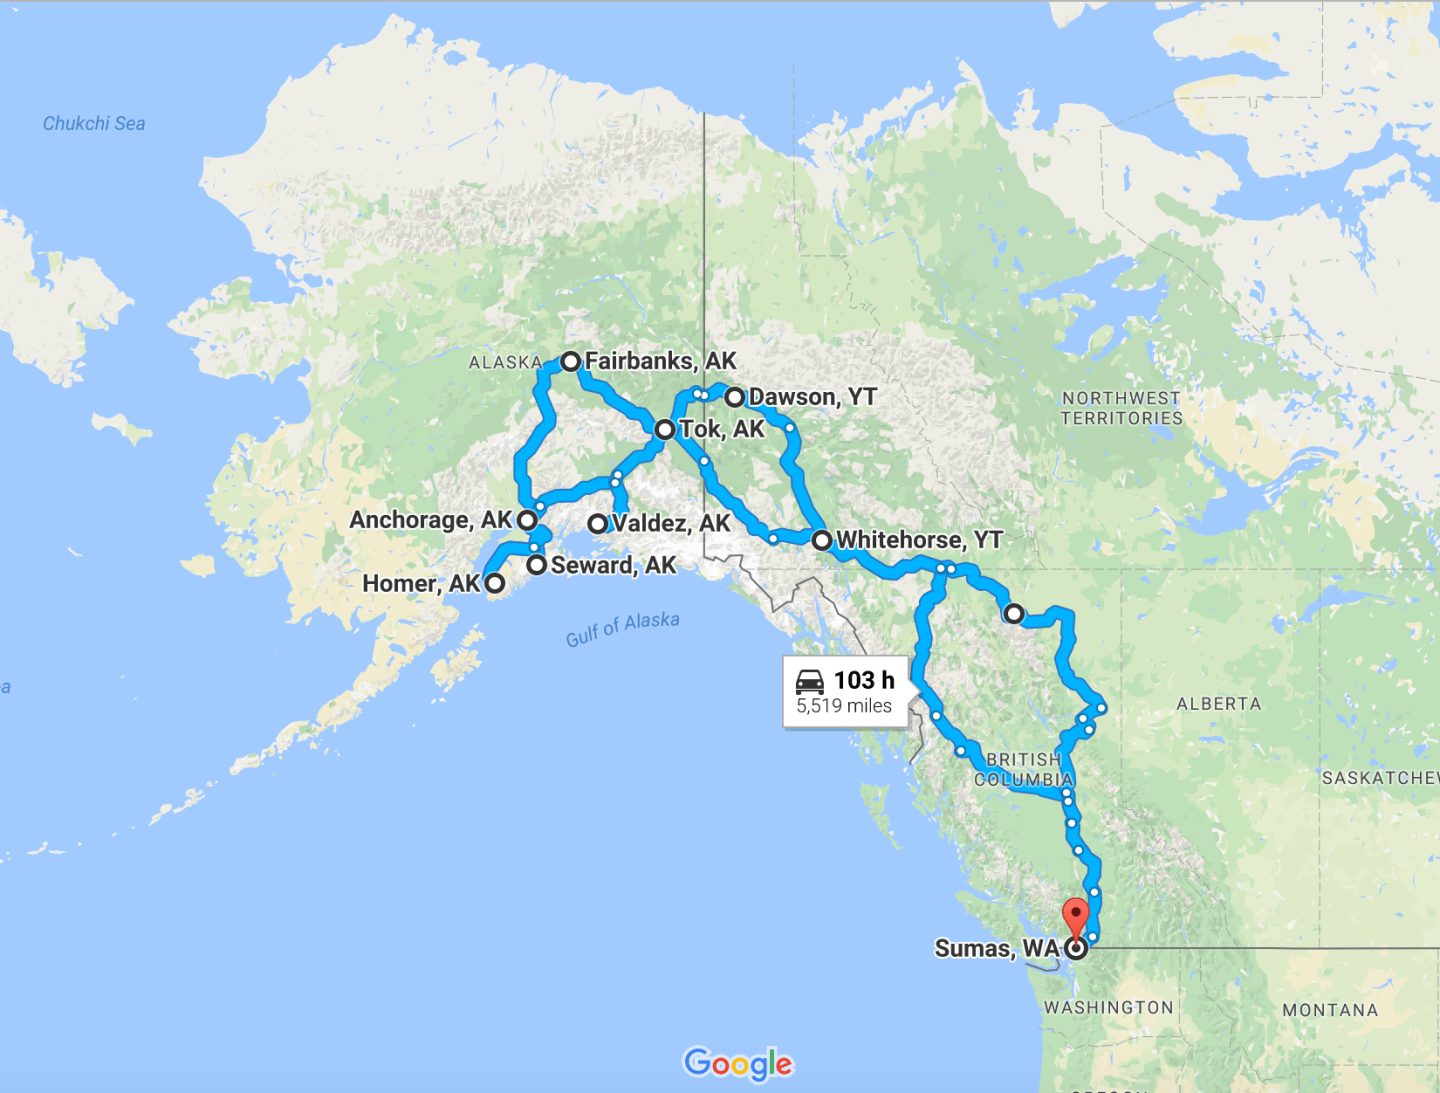 A Once-In-A-Lifetime RV Road Trip to Alaska